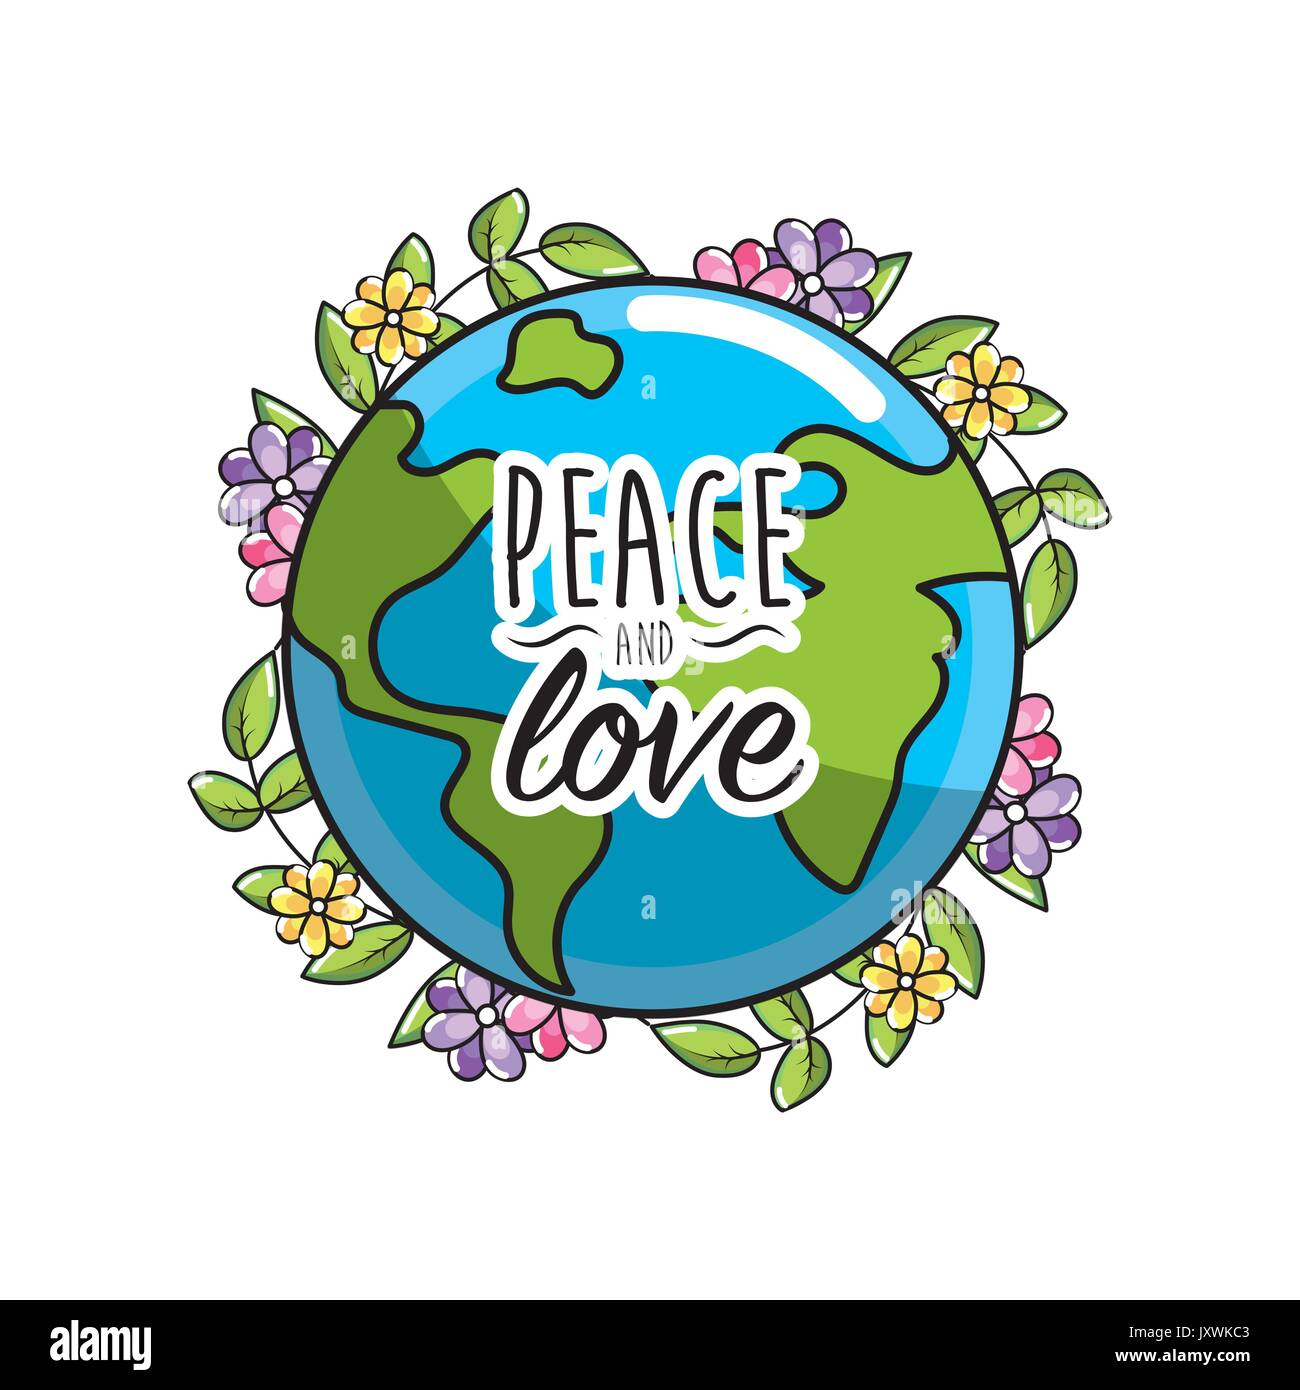 communal harmony and world peace Indian festivals establishing communal harmony and  present a rare example of communal harmony and  the field of communal harmony, world peace,.